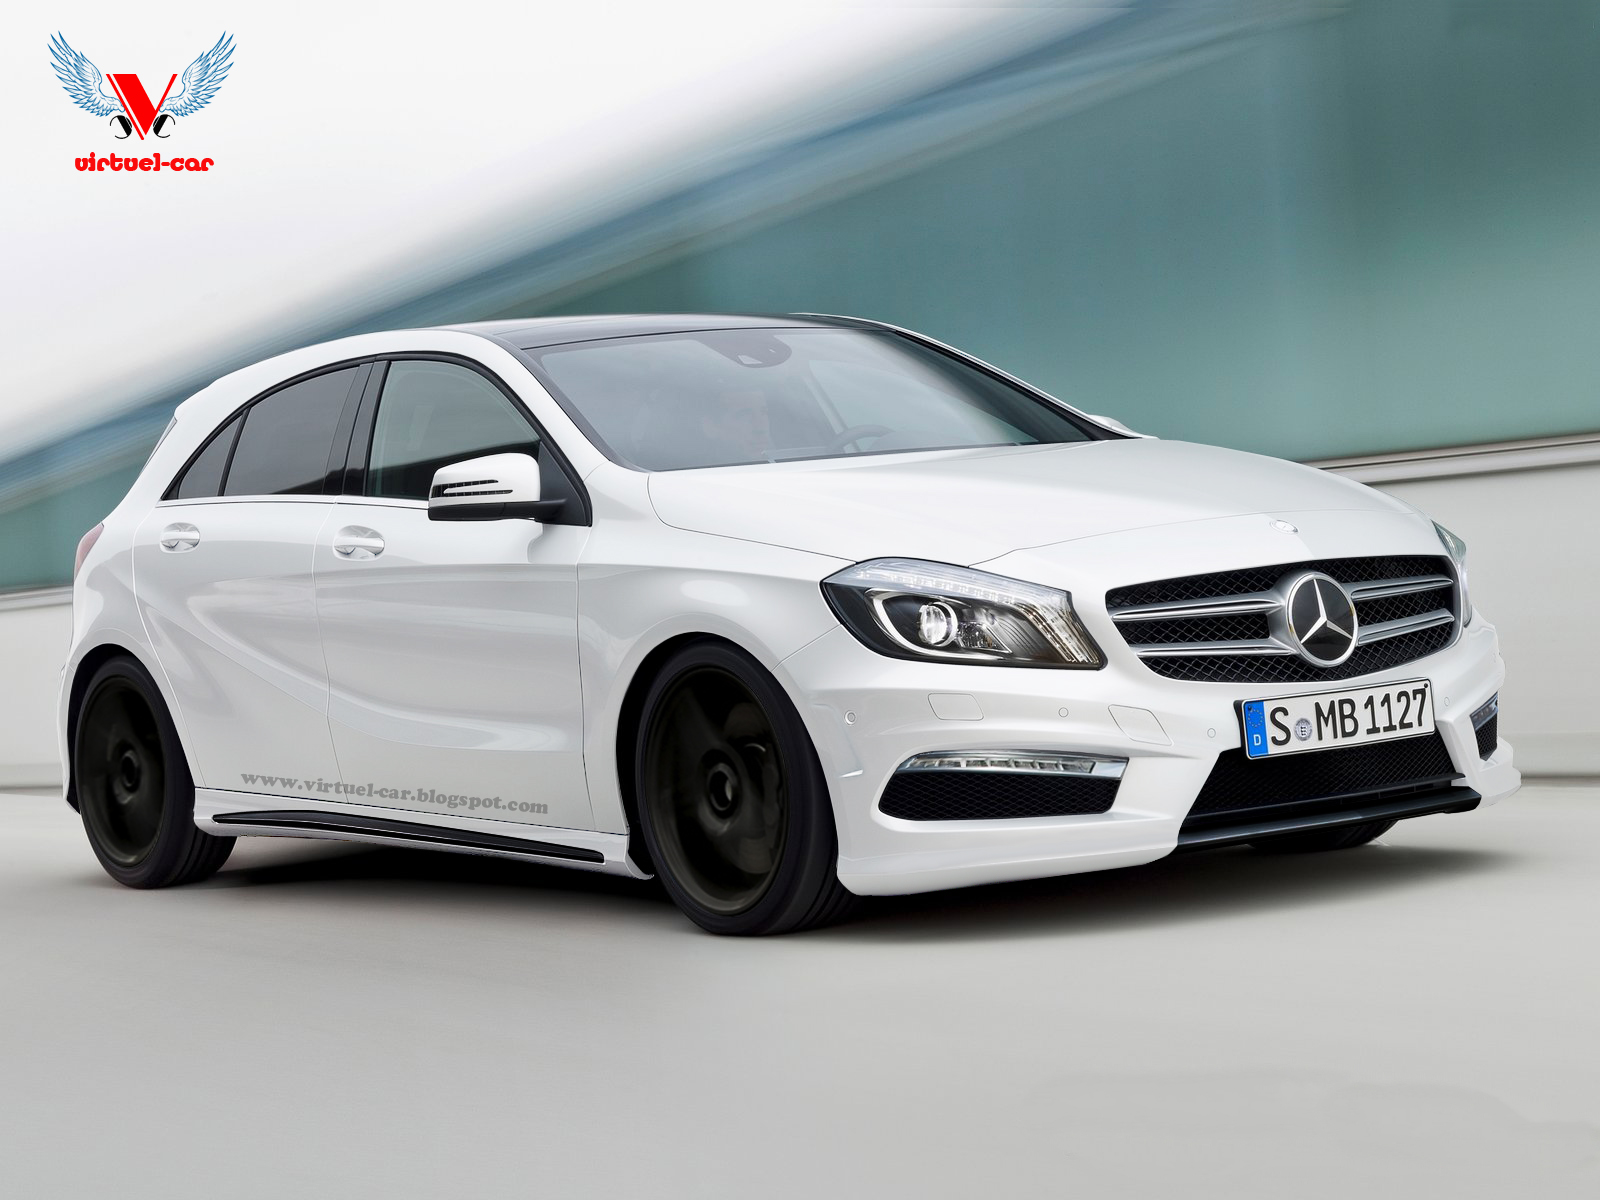 Mercedes benz a 45 amg technical details history photos for Mercedes benz amg accessories parts